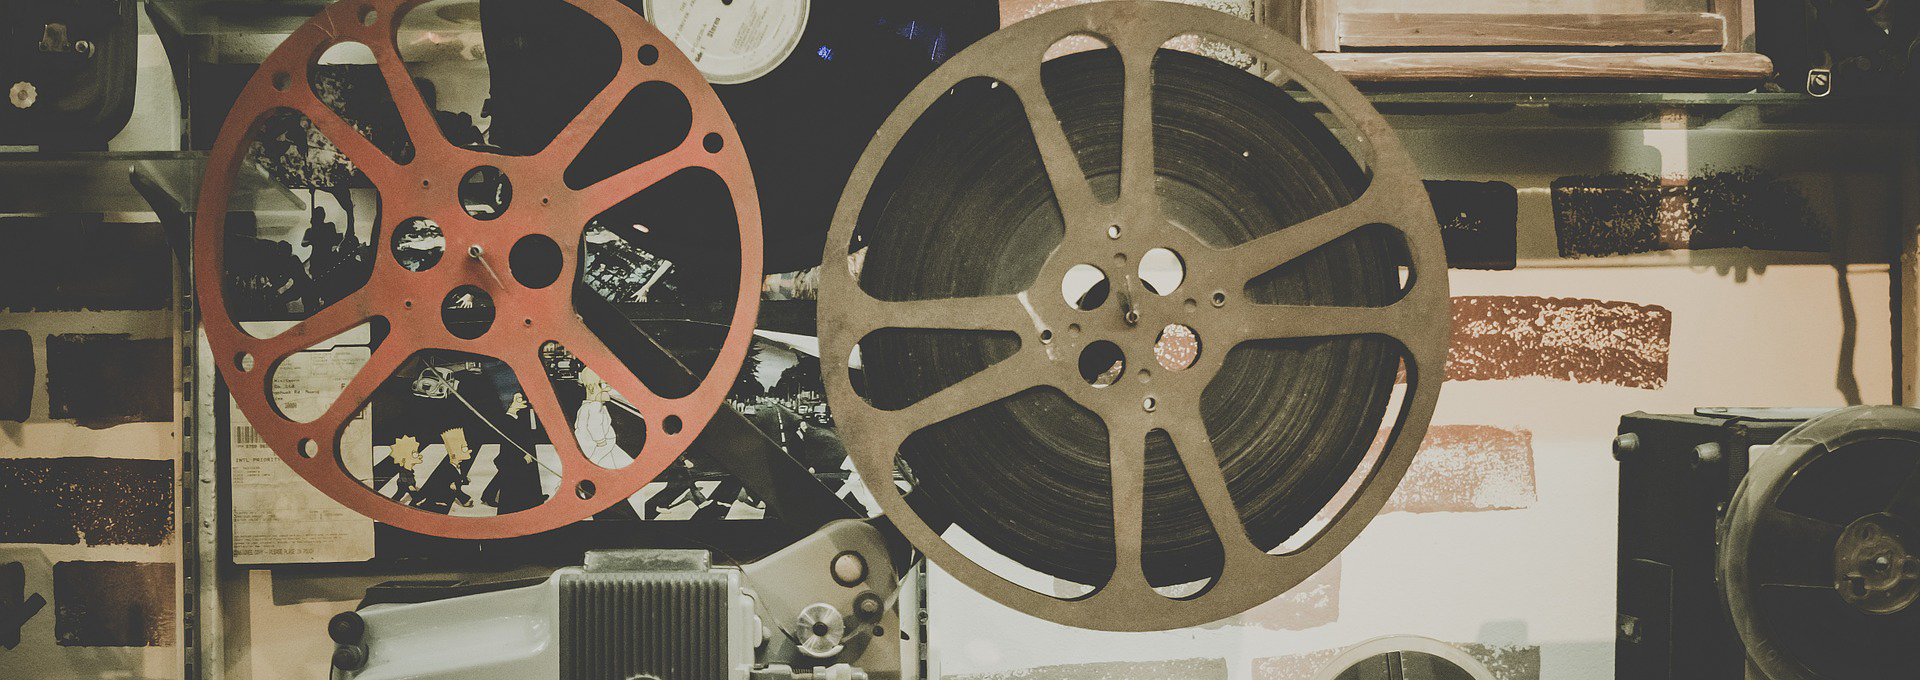 8mm/Super 8mm & 16mm Movie Film Transfers